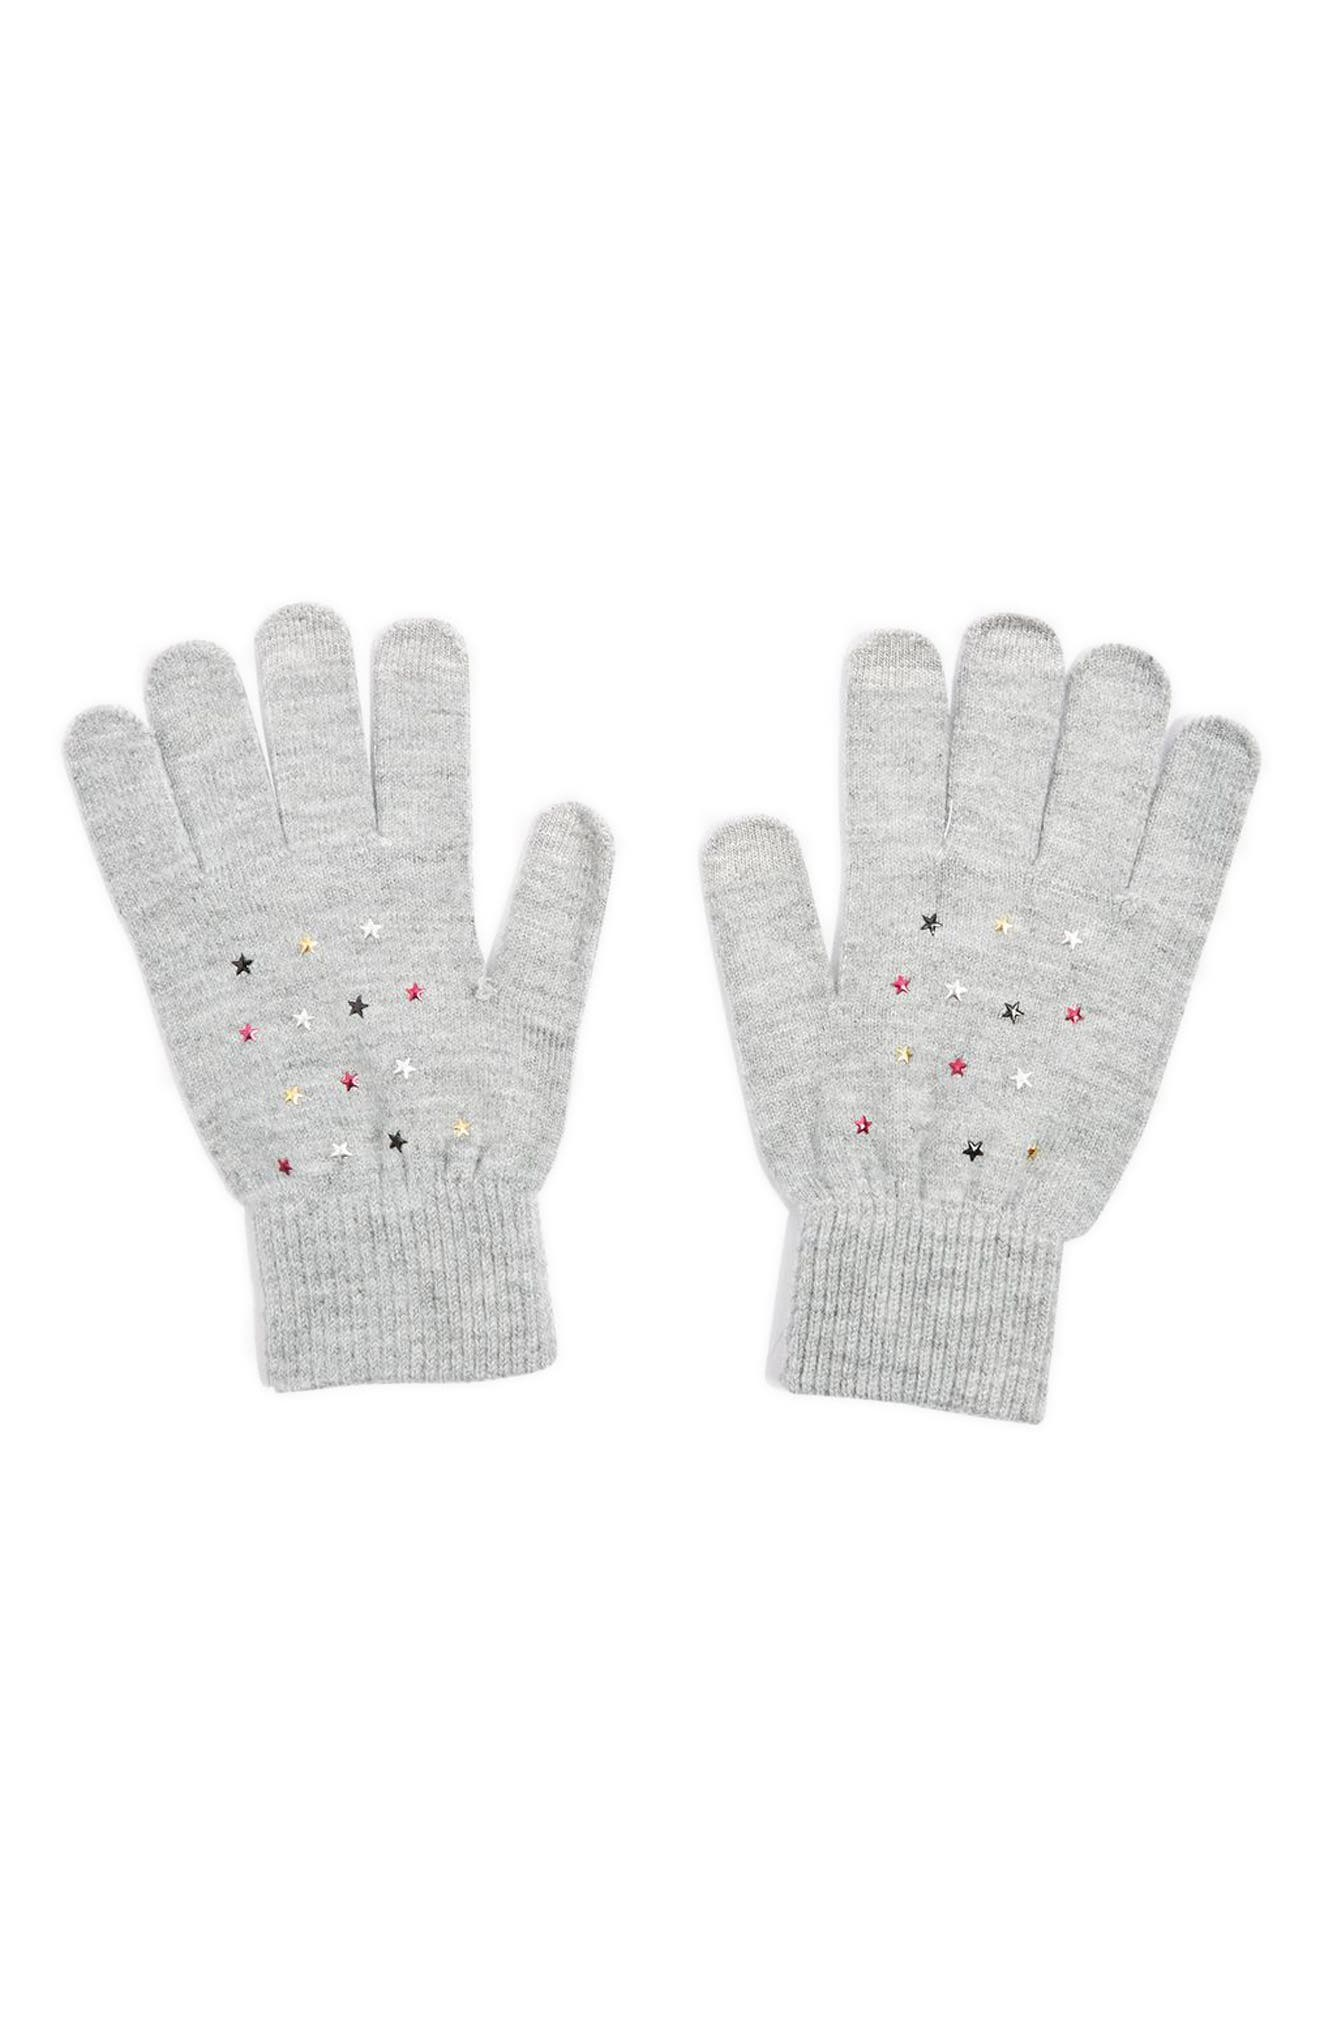 Knit Star Gloves,                         Main,                         color, Grey